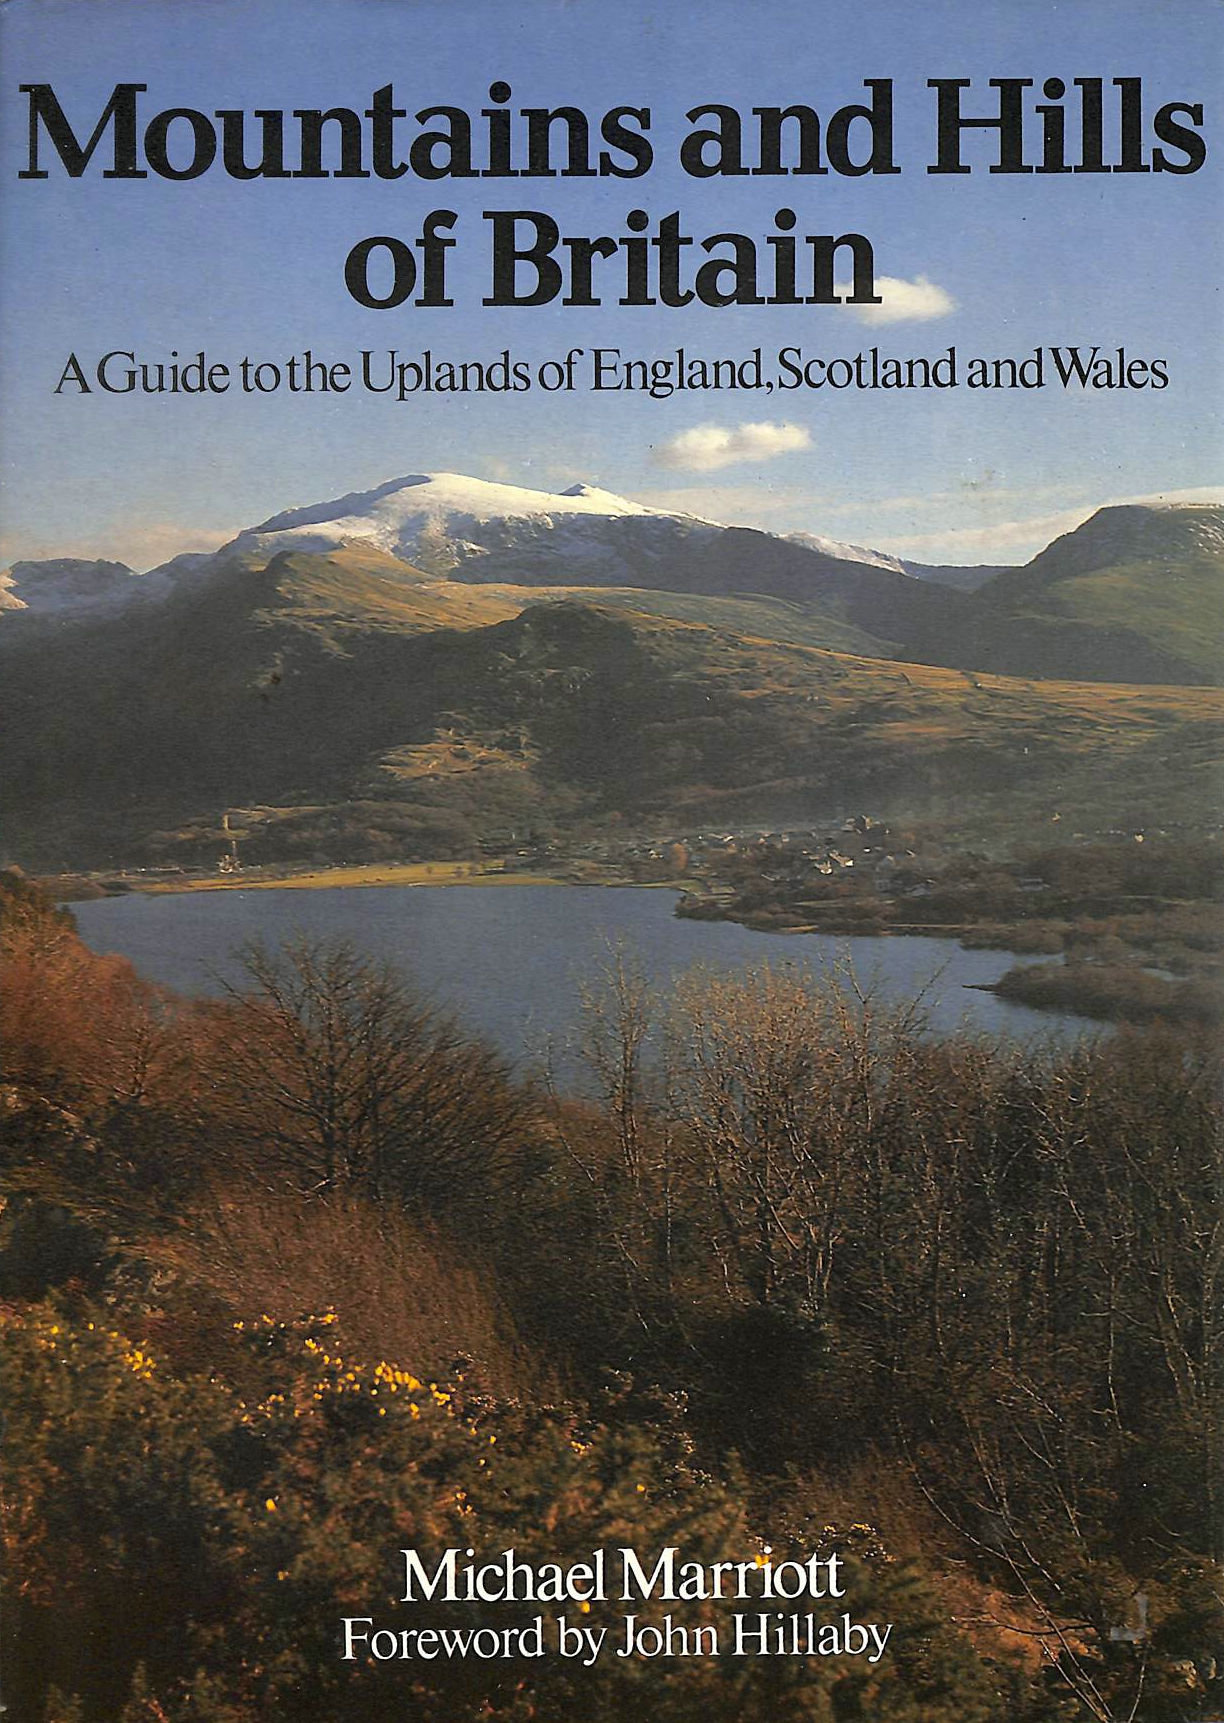 Image for Mountains and Hills of Britain: A Guide to the Uplands of England, Scotland and Wales (An Adkinson Parrish book)